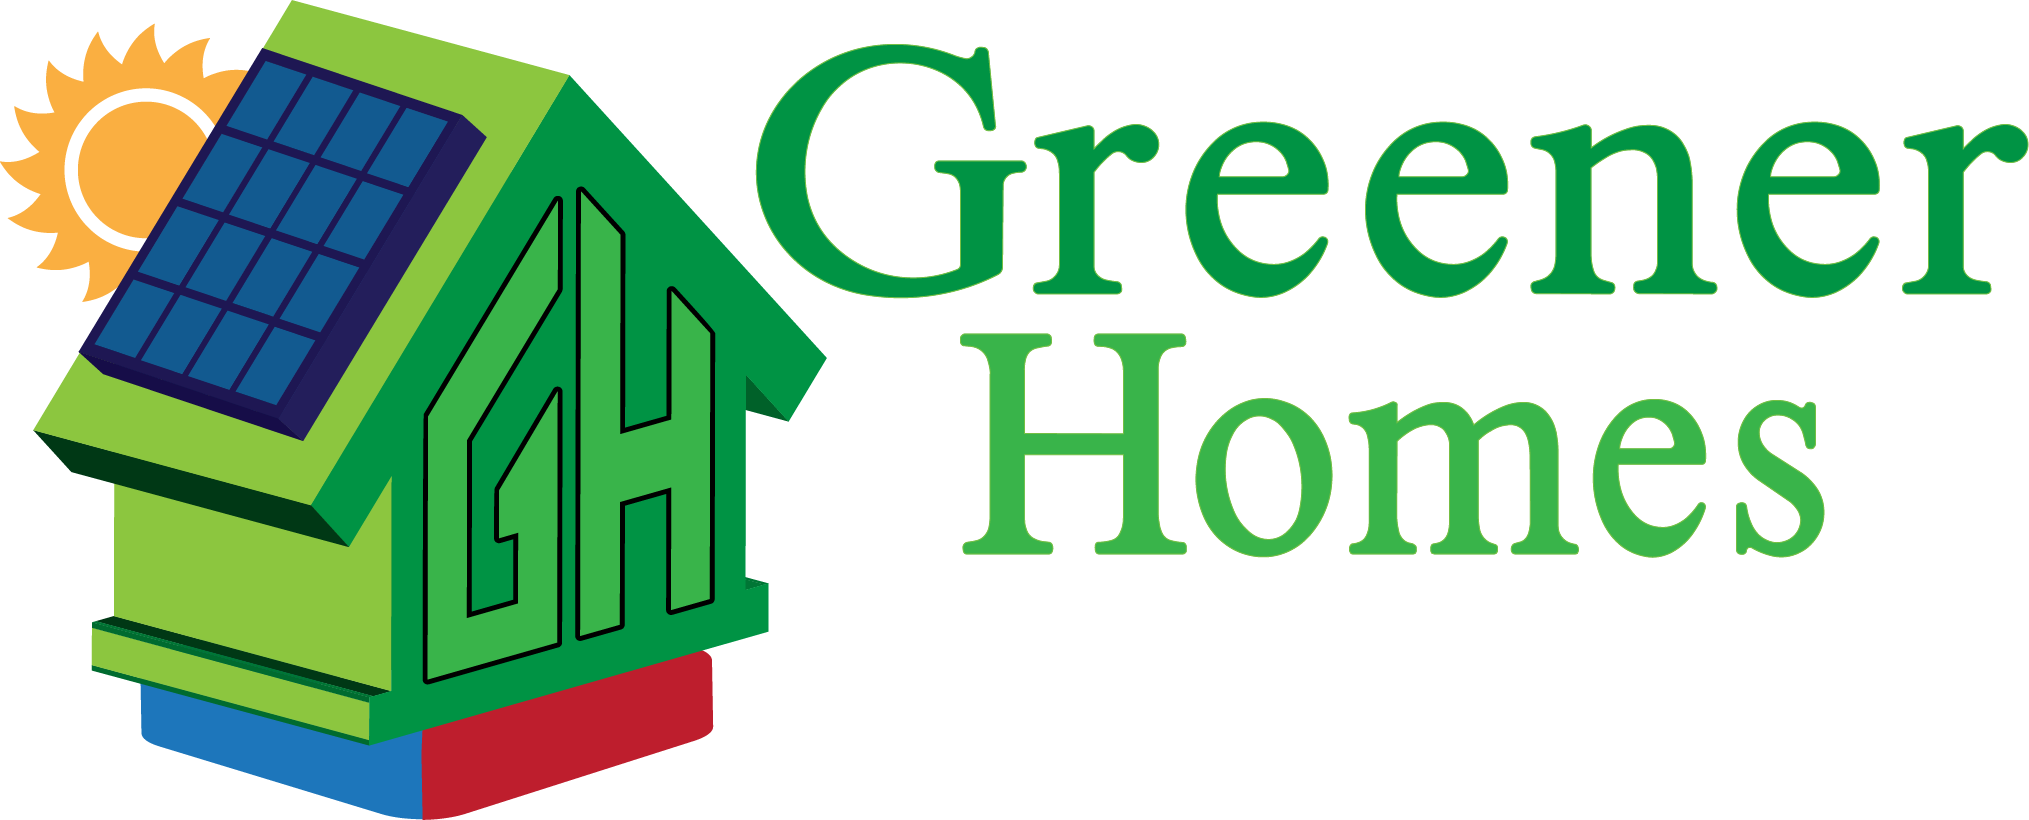 Greener Homes Full Logo - 2048px